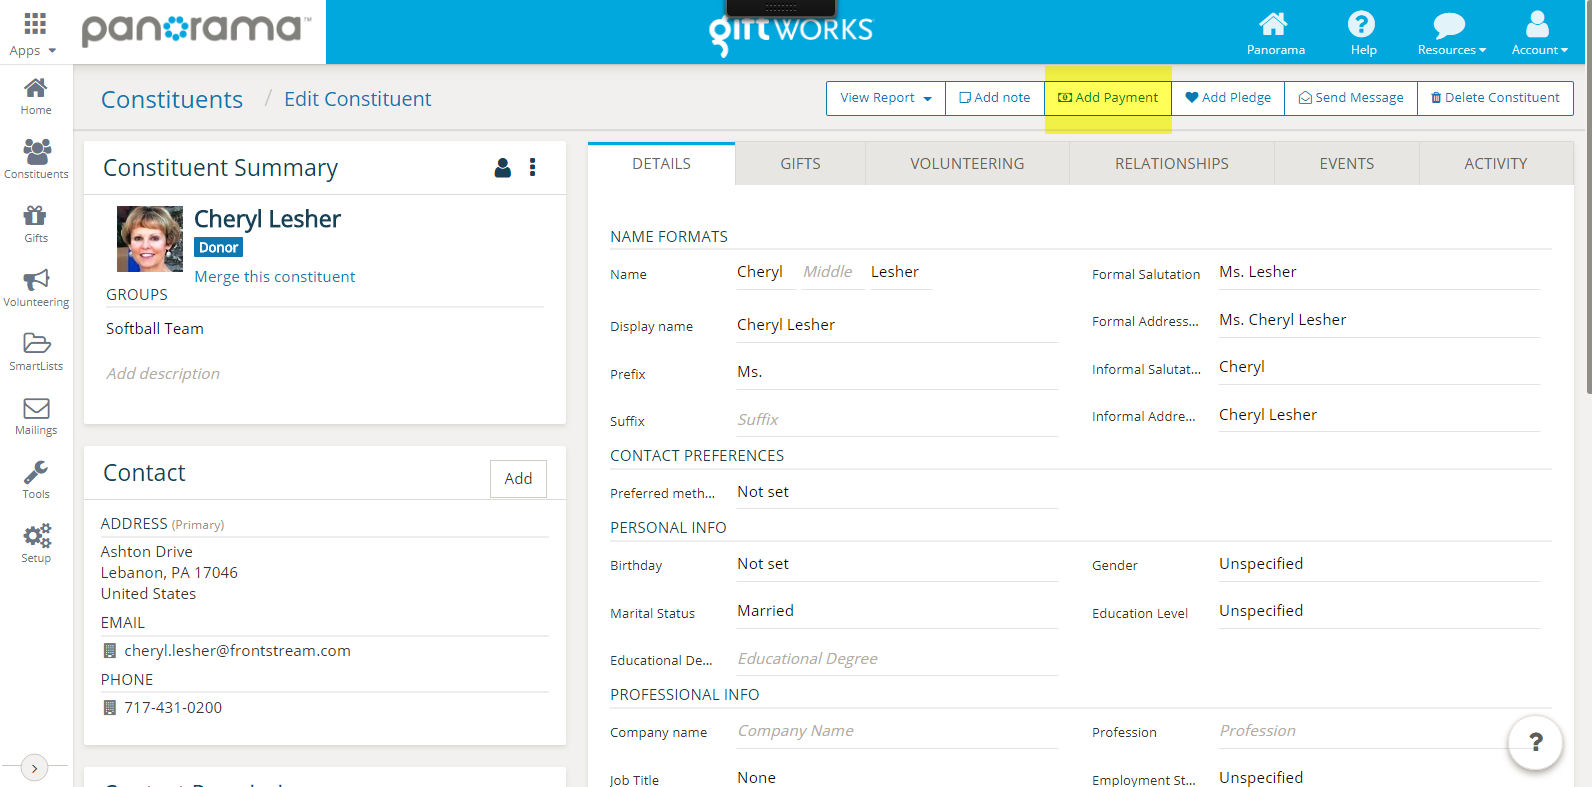 Or You Can Click The Gifts Section Of GiftWorks Cloud And Select Add Payment On Top Right